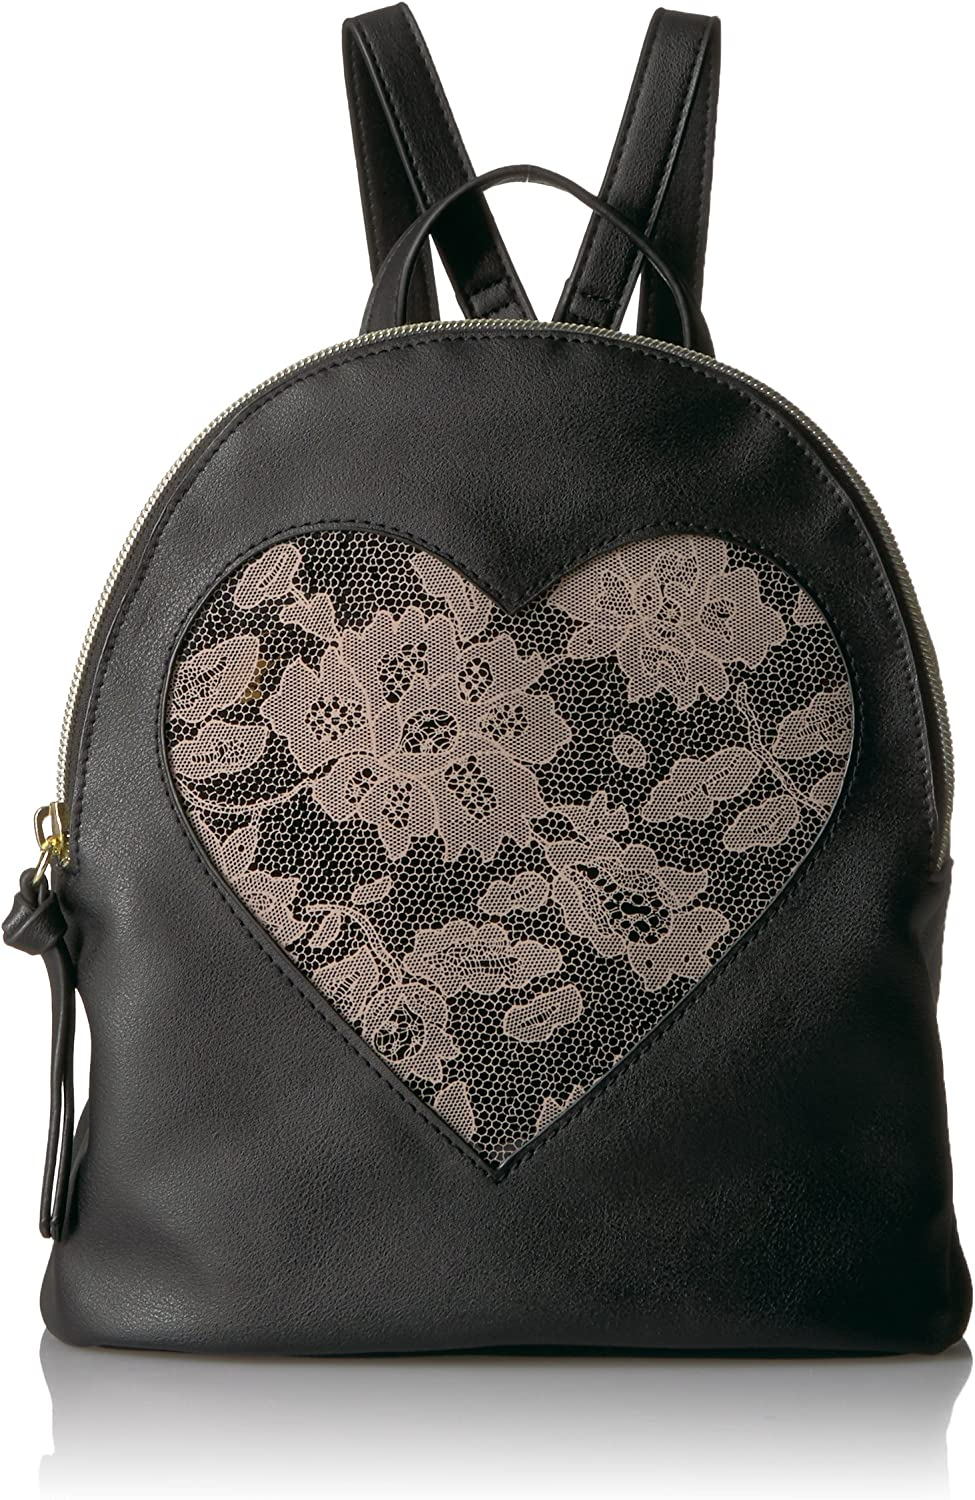 TShirt & Jeans Frosted Lace Heart Back Pack